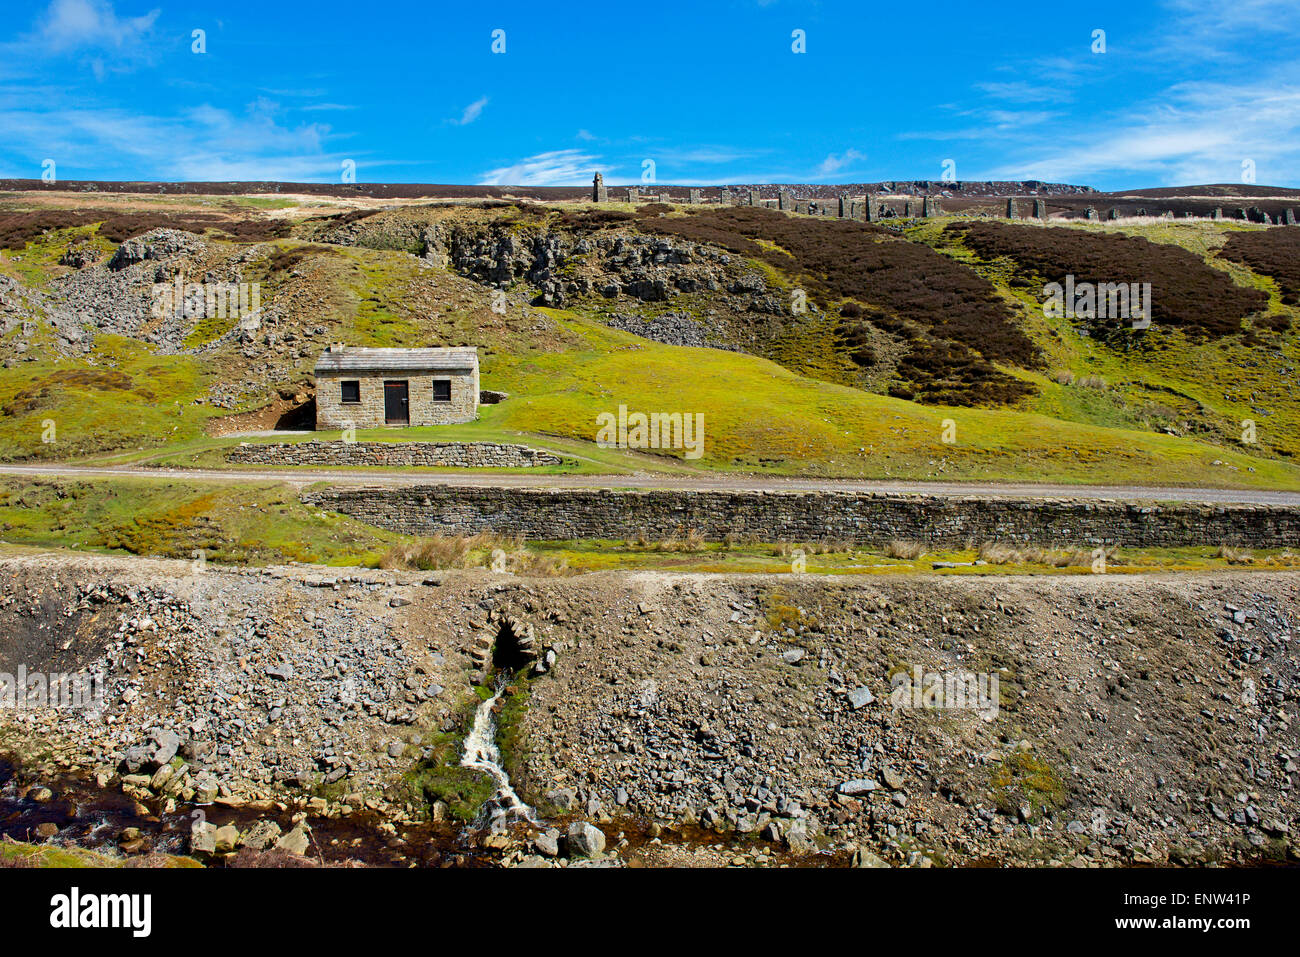 The Old Gang lead mining field, Swaledale, Yorkshire Dales National Park, North Yorkshire, England UK - Stock Image